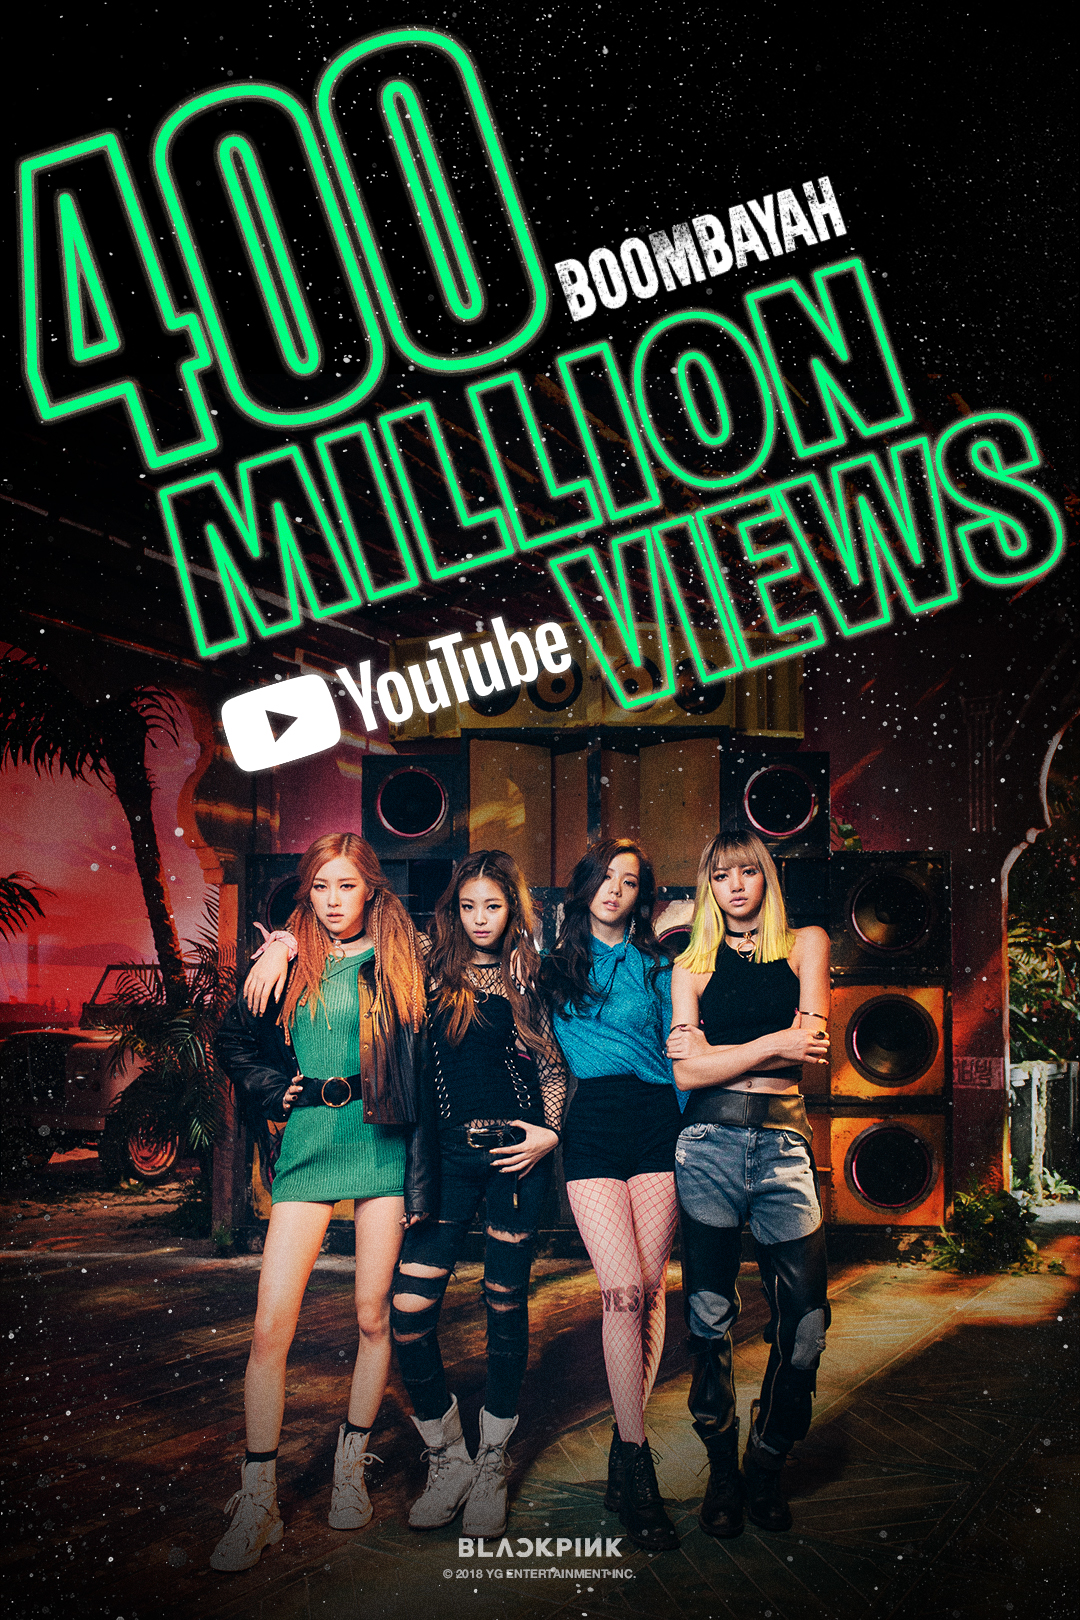 181023 BLACKPINK - 'BOOMBAYAH' MV HITS 400 MILLION VIEWS